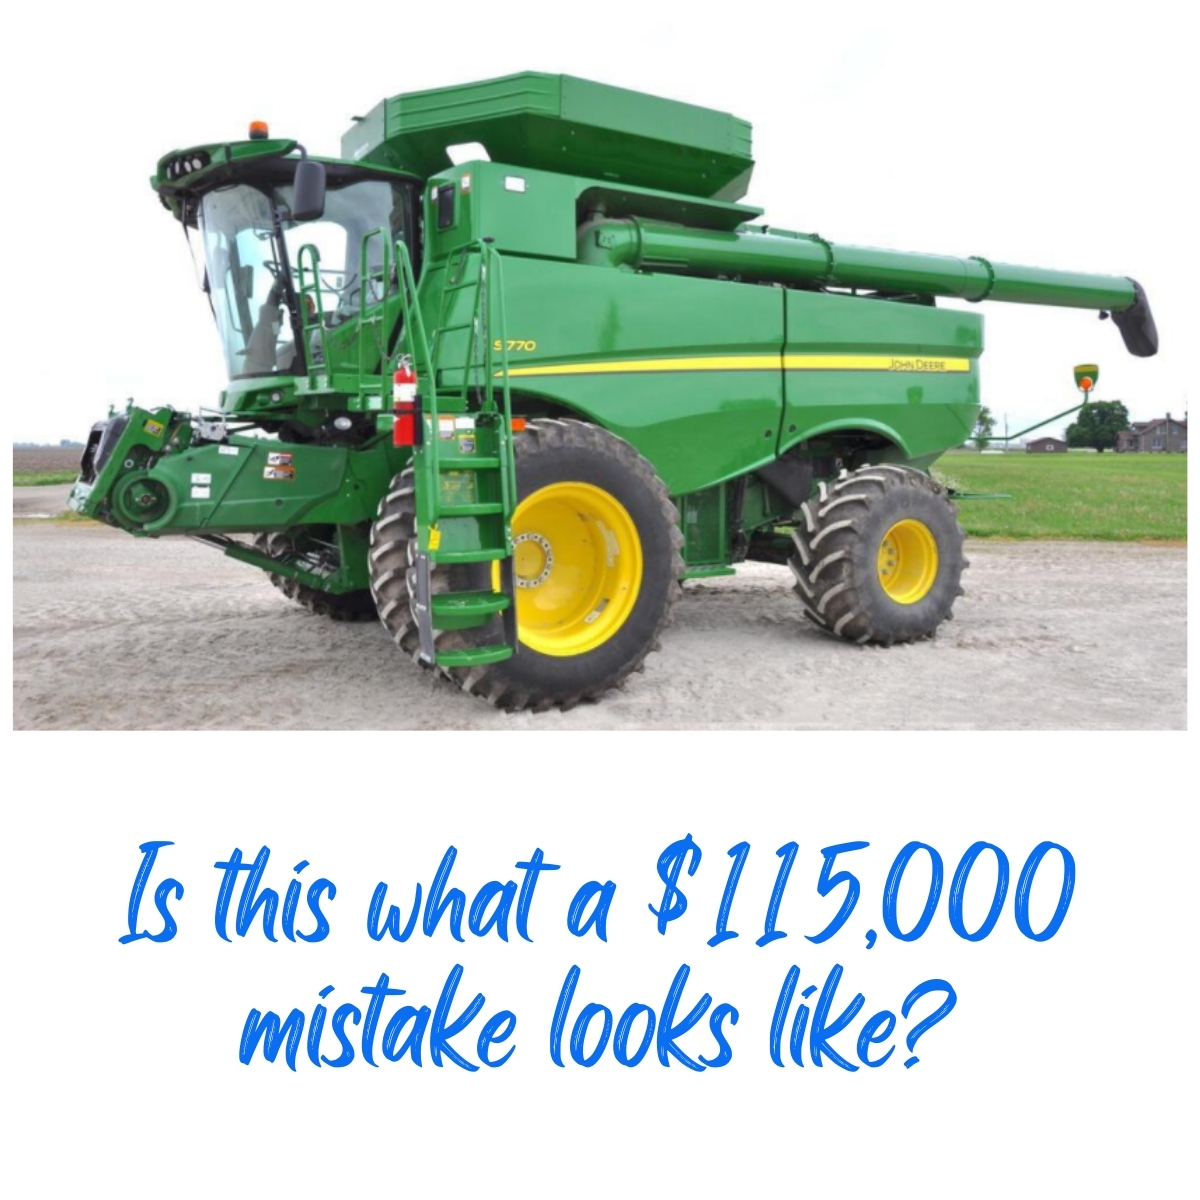 combine depreciation can be a costly part of upgrading